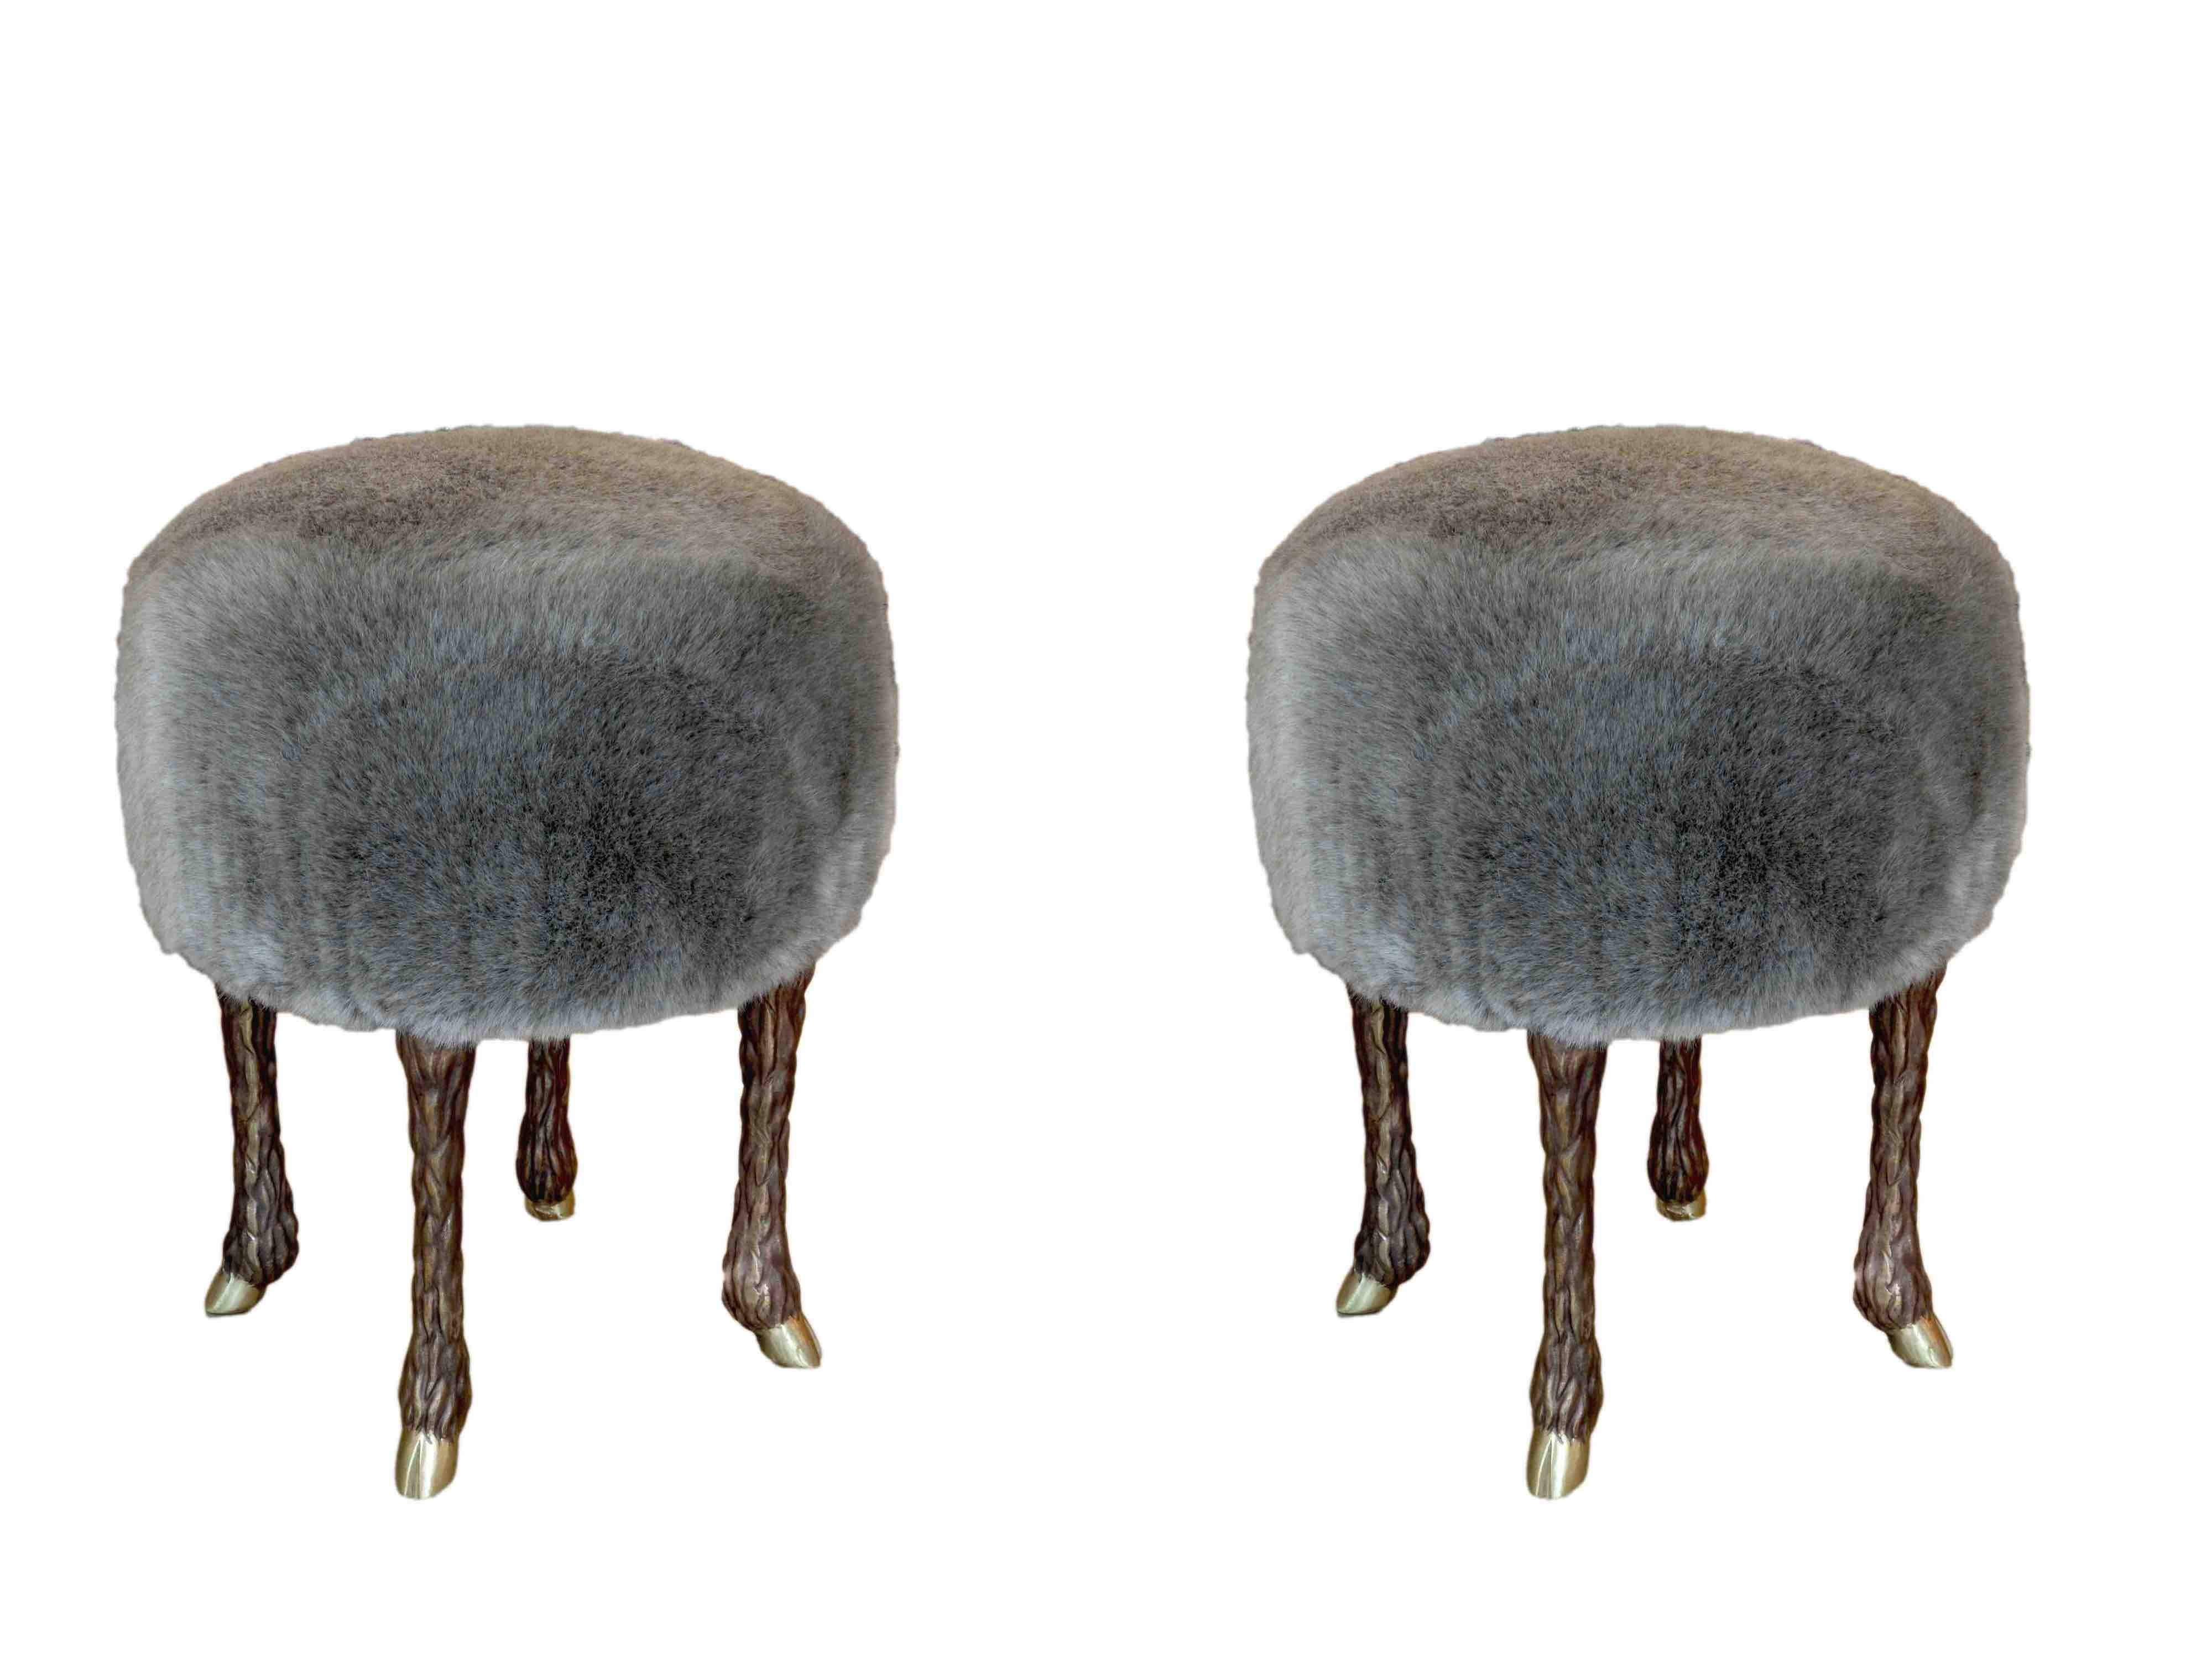 PAD Monaco 2019 New Collectible Design Wonders at Maison Rapin - Marc Bankowsky - Pair of stools covered with eco-fur pad PAD Monaco 2019: New Collectible Design Wonders at Maison Rapin PAD Monaco 2019 New Collectible Design Wonders at Maison Rapin Marc Bankowsky Pair of stools covered with eco fur